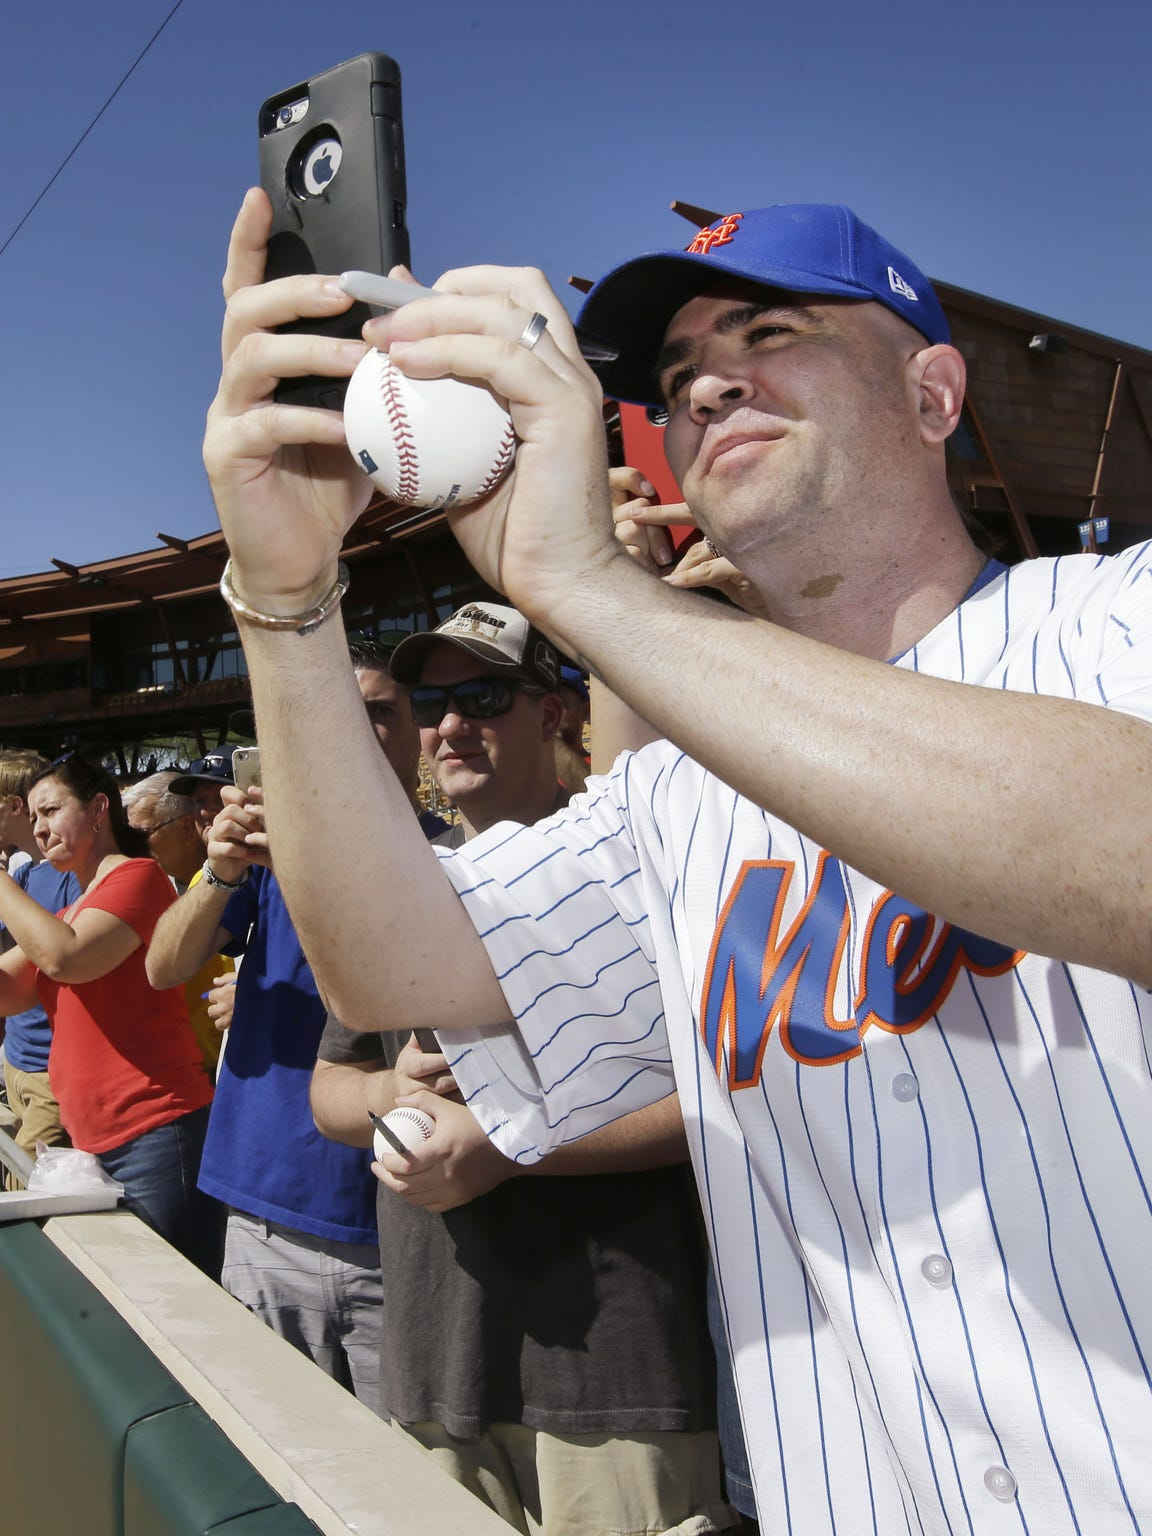 Daniel Kelly of Casa Grande takes a photo of Scottsdale